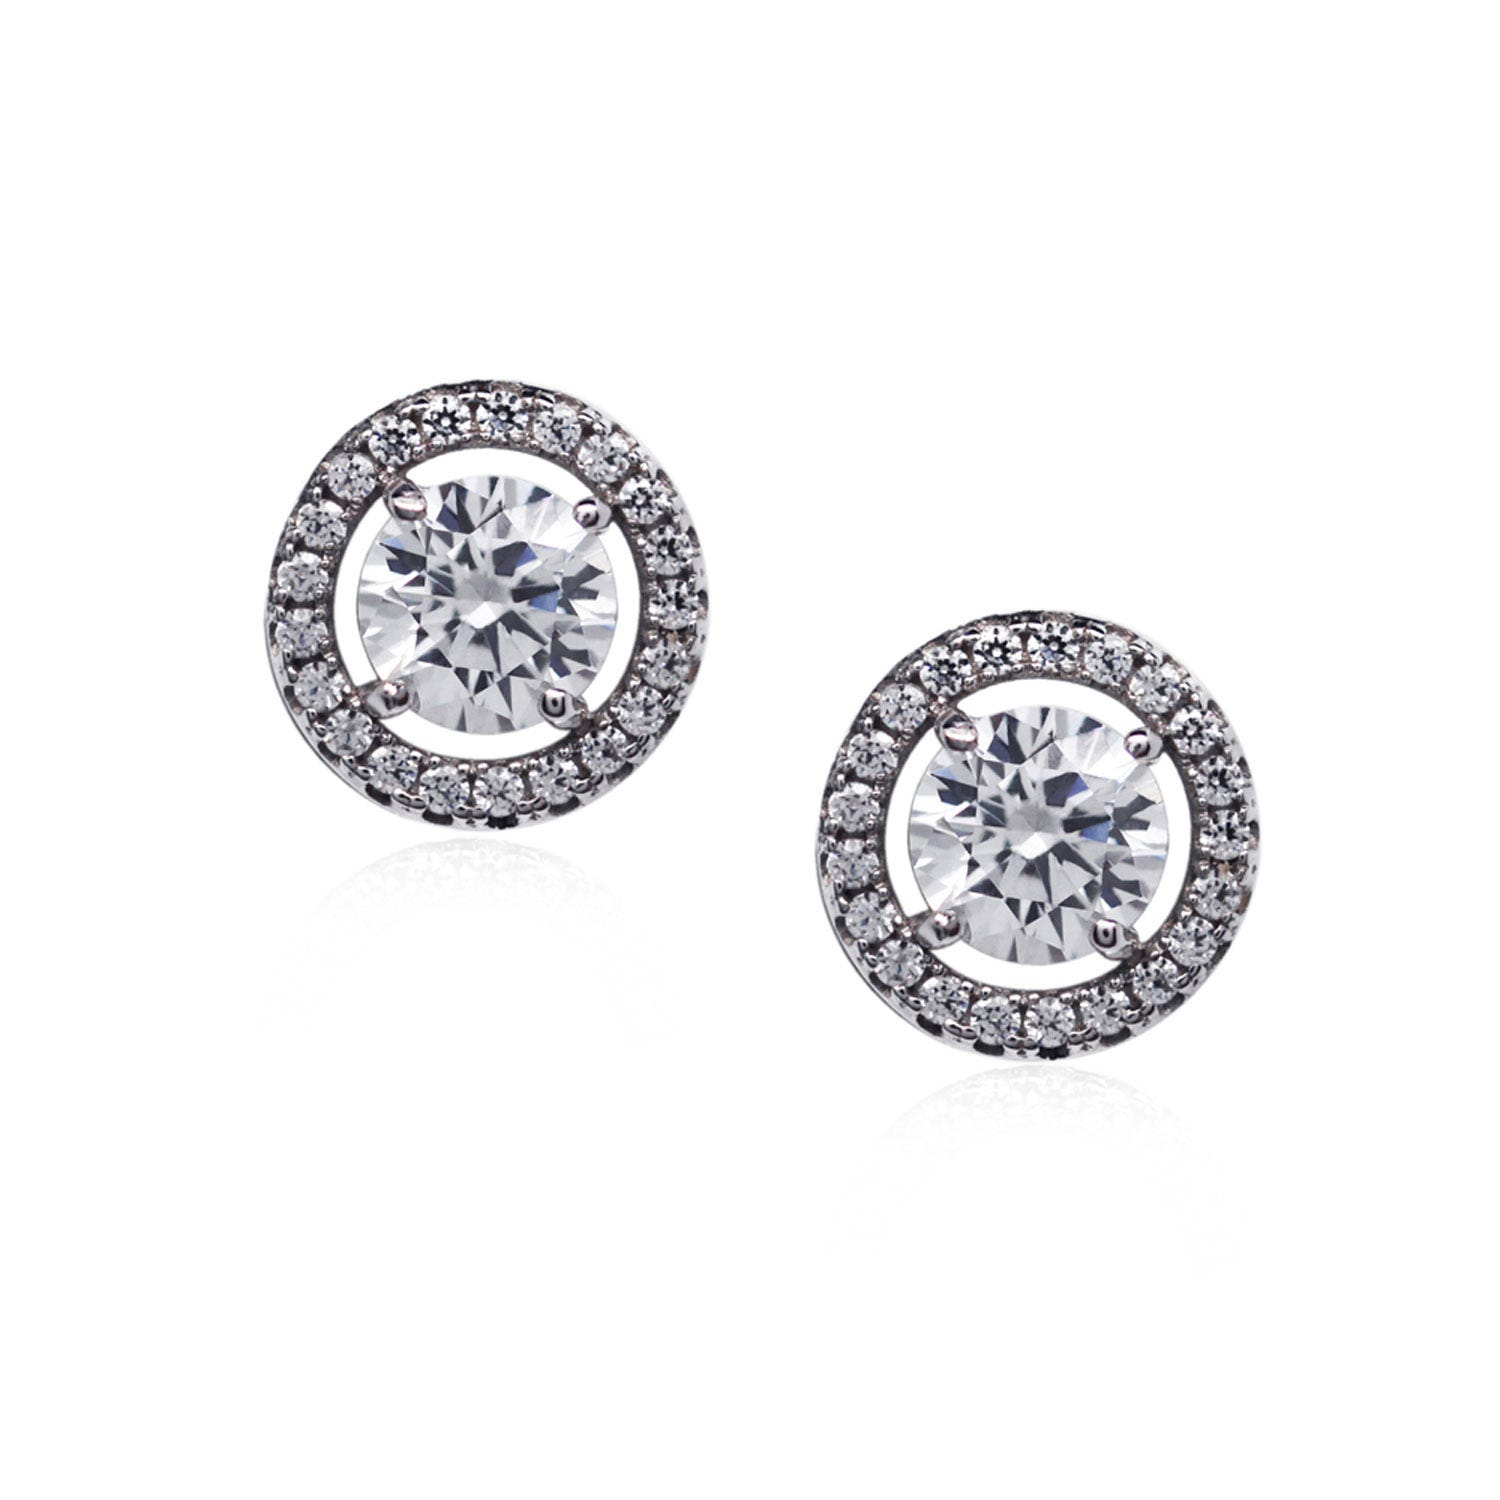 CARAT* London Sterling Silver Border Set Stud Earrings Featuring A 6.75mm Brilliant Cut Centre Stone